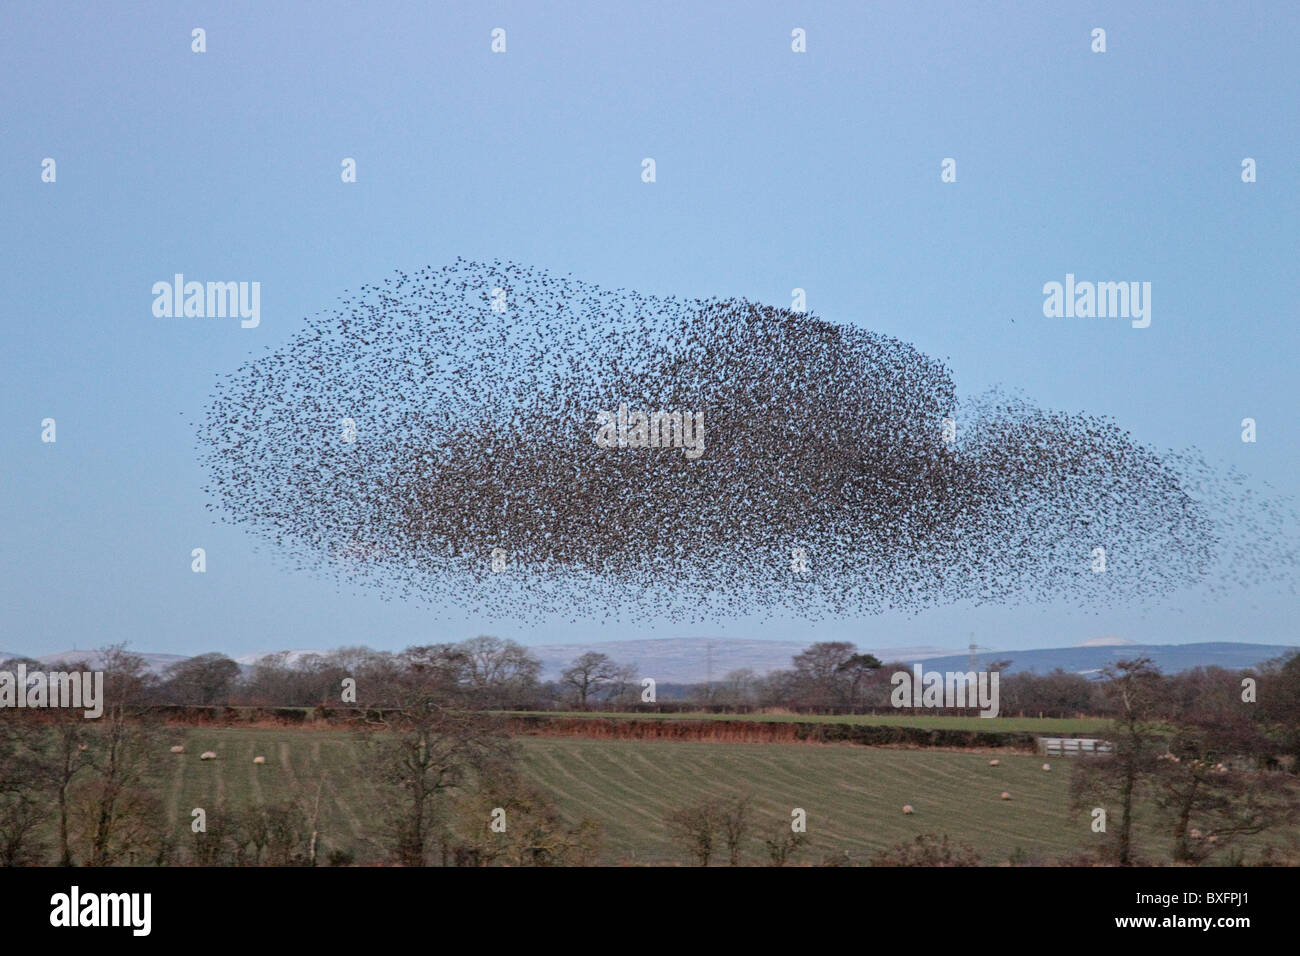 Common Starlings coming into roost - Stock Image